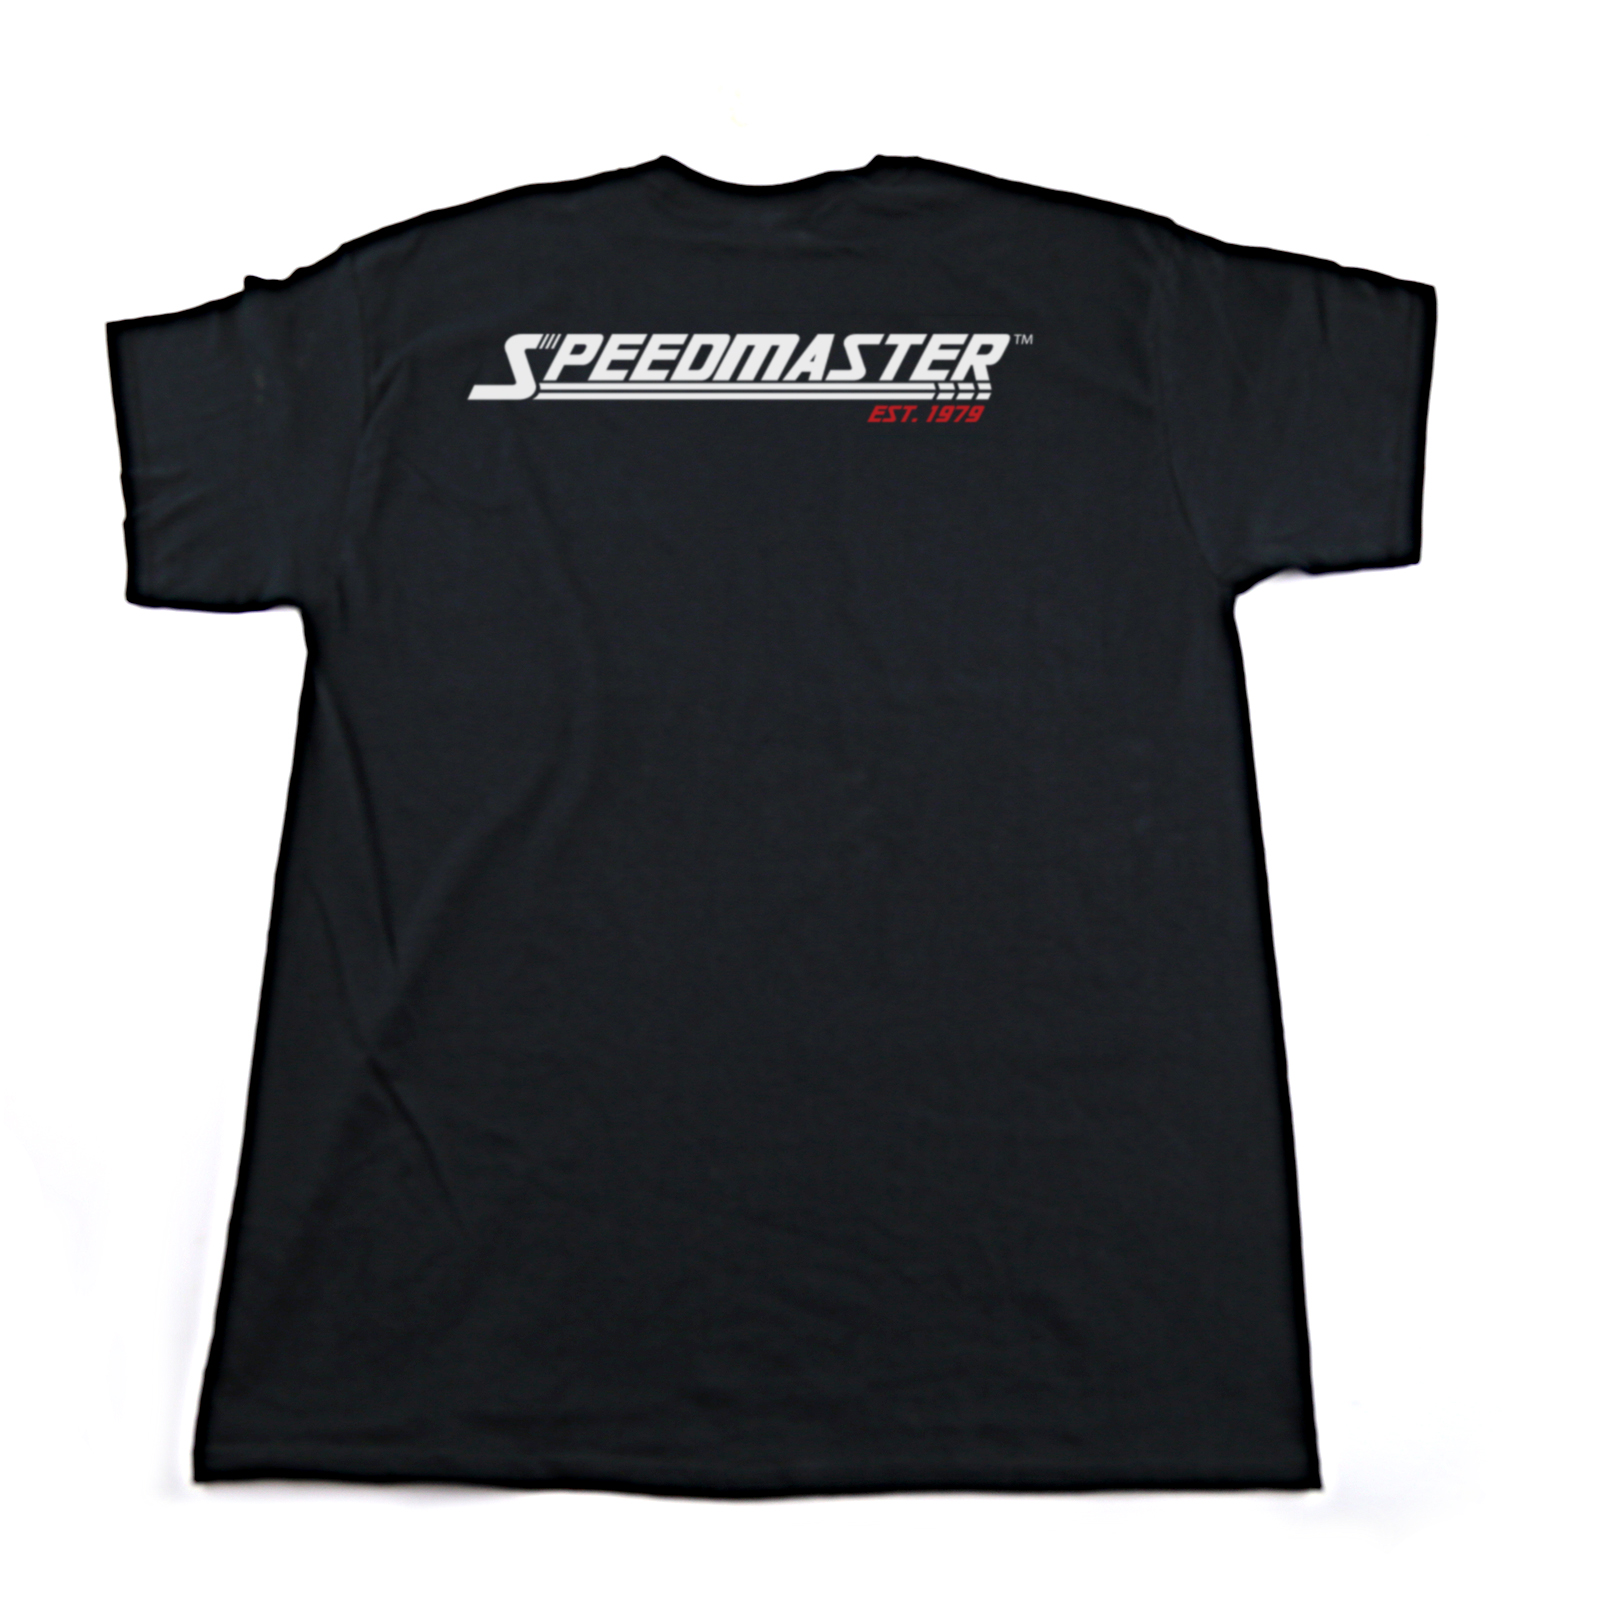 Speedmaster Black T-Shirt - XXXXX-Large XXXXXL